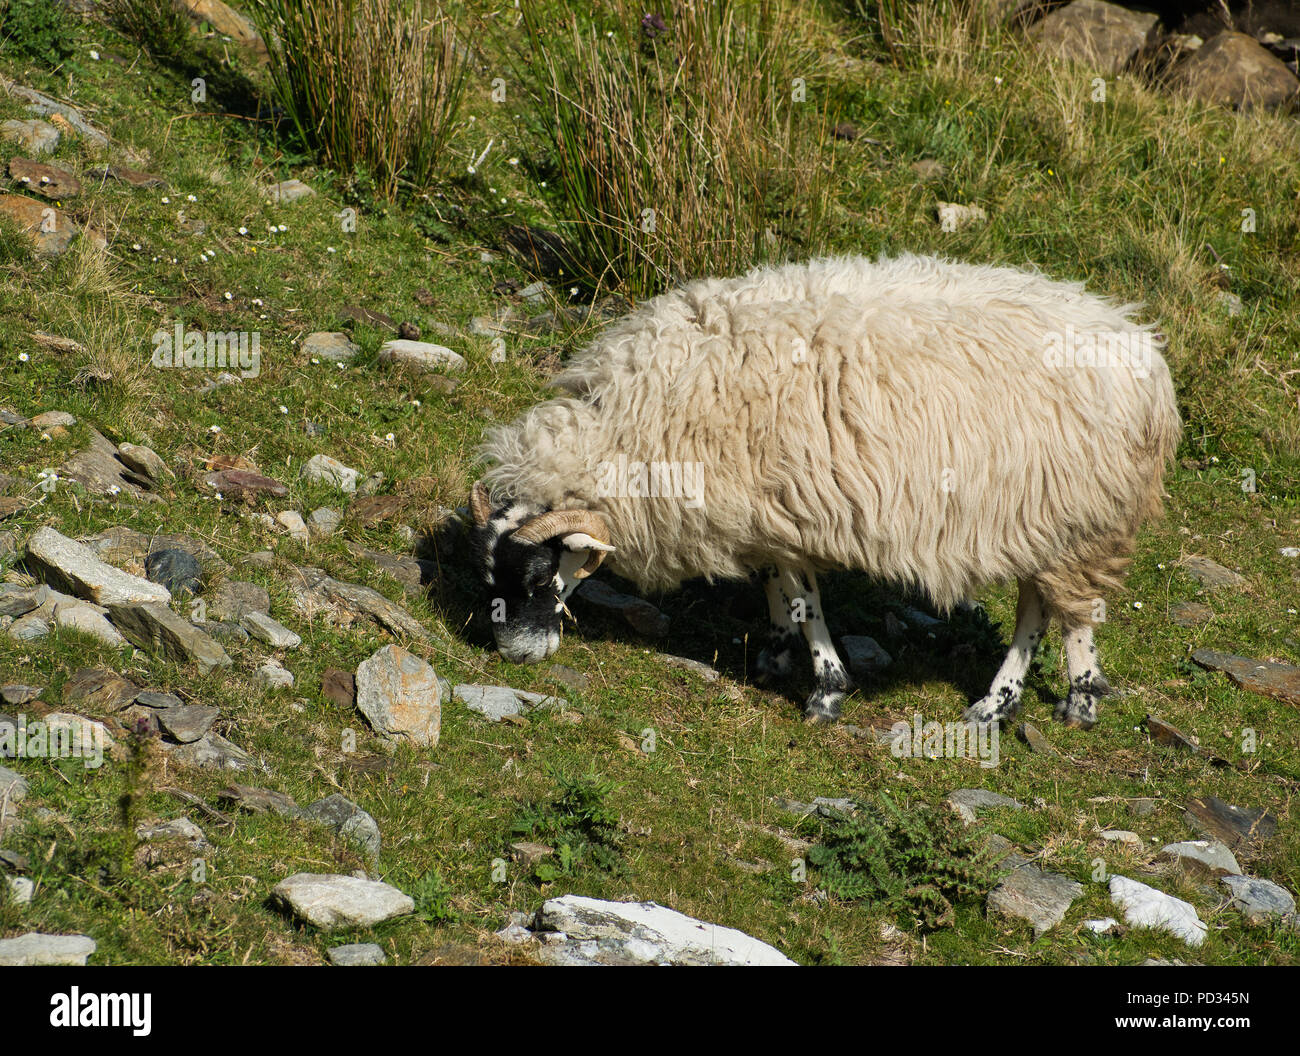 A white sheep with thick fur and black head in the mountains while eating photographed from the side - Stock Image